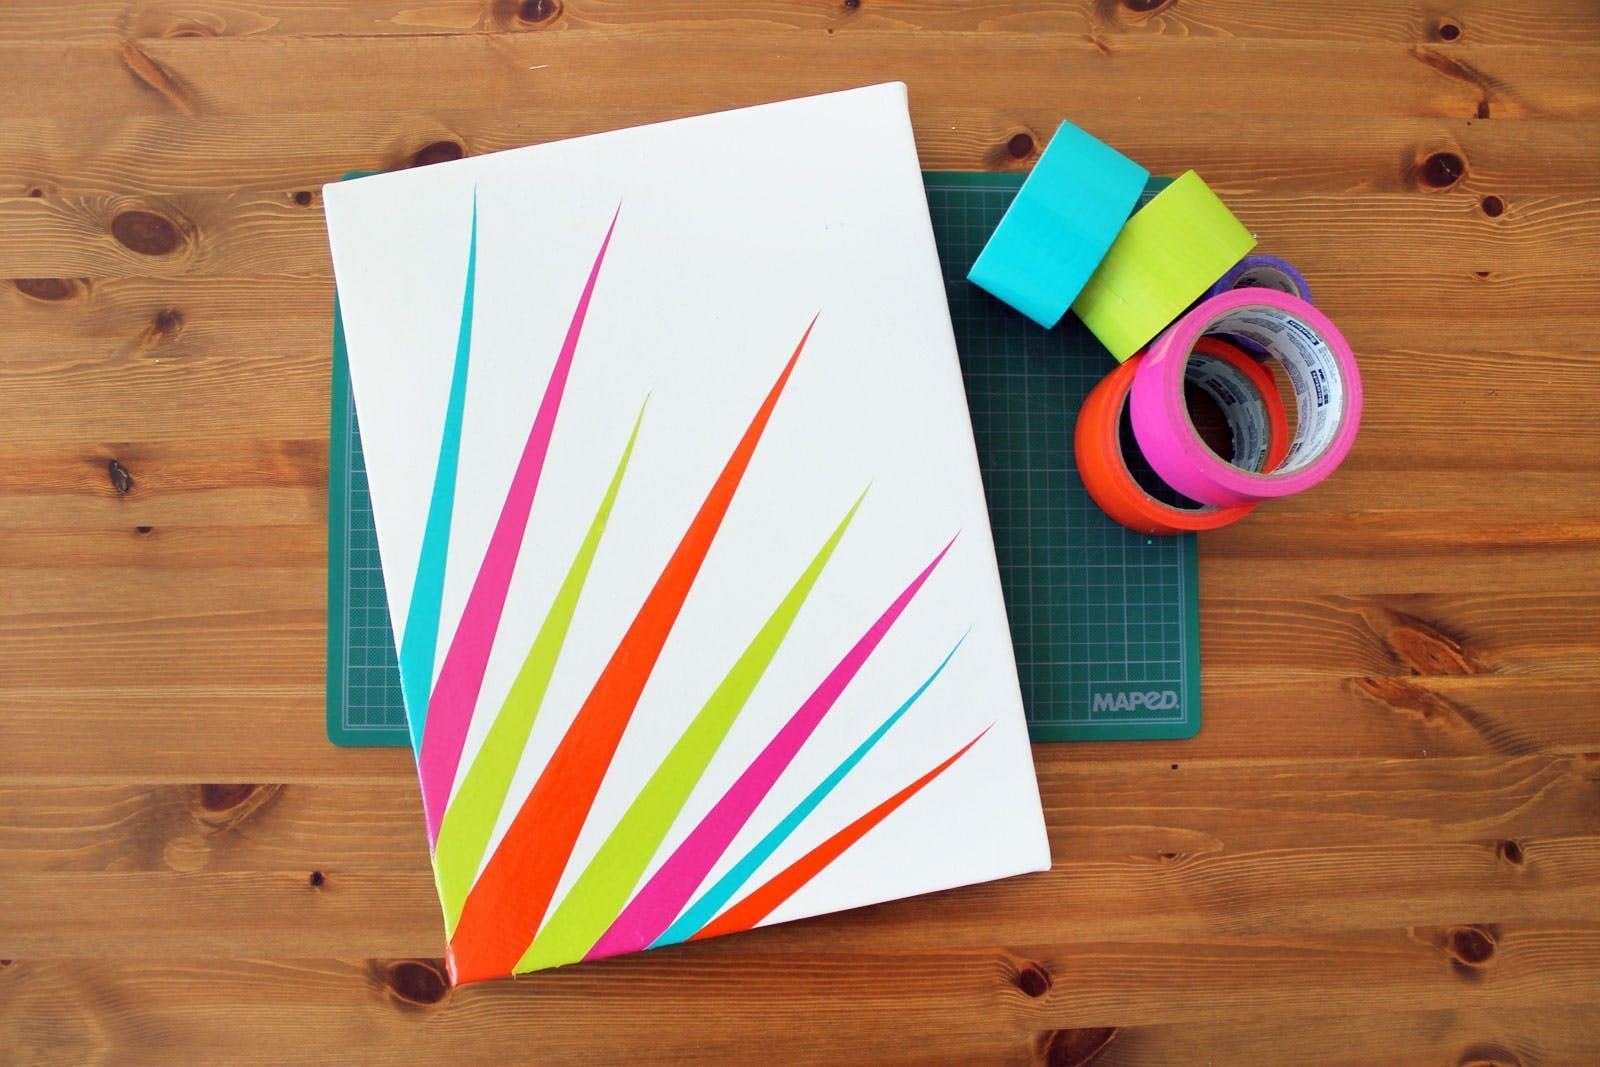 Diy Duct Tape Canvas Art In 90 Seconds | Brit + Co Inside Duct Tape Wall